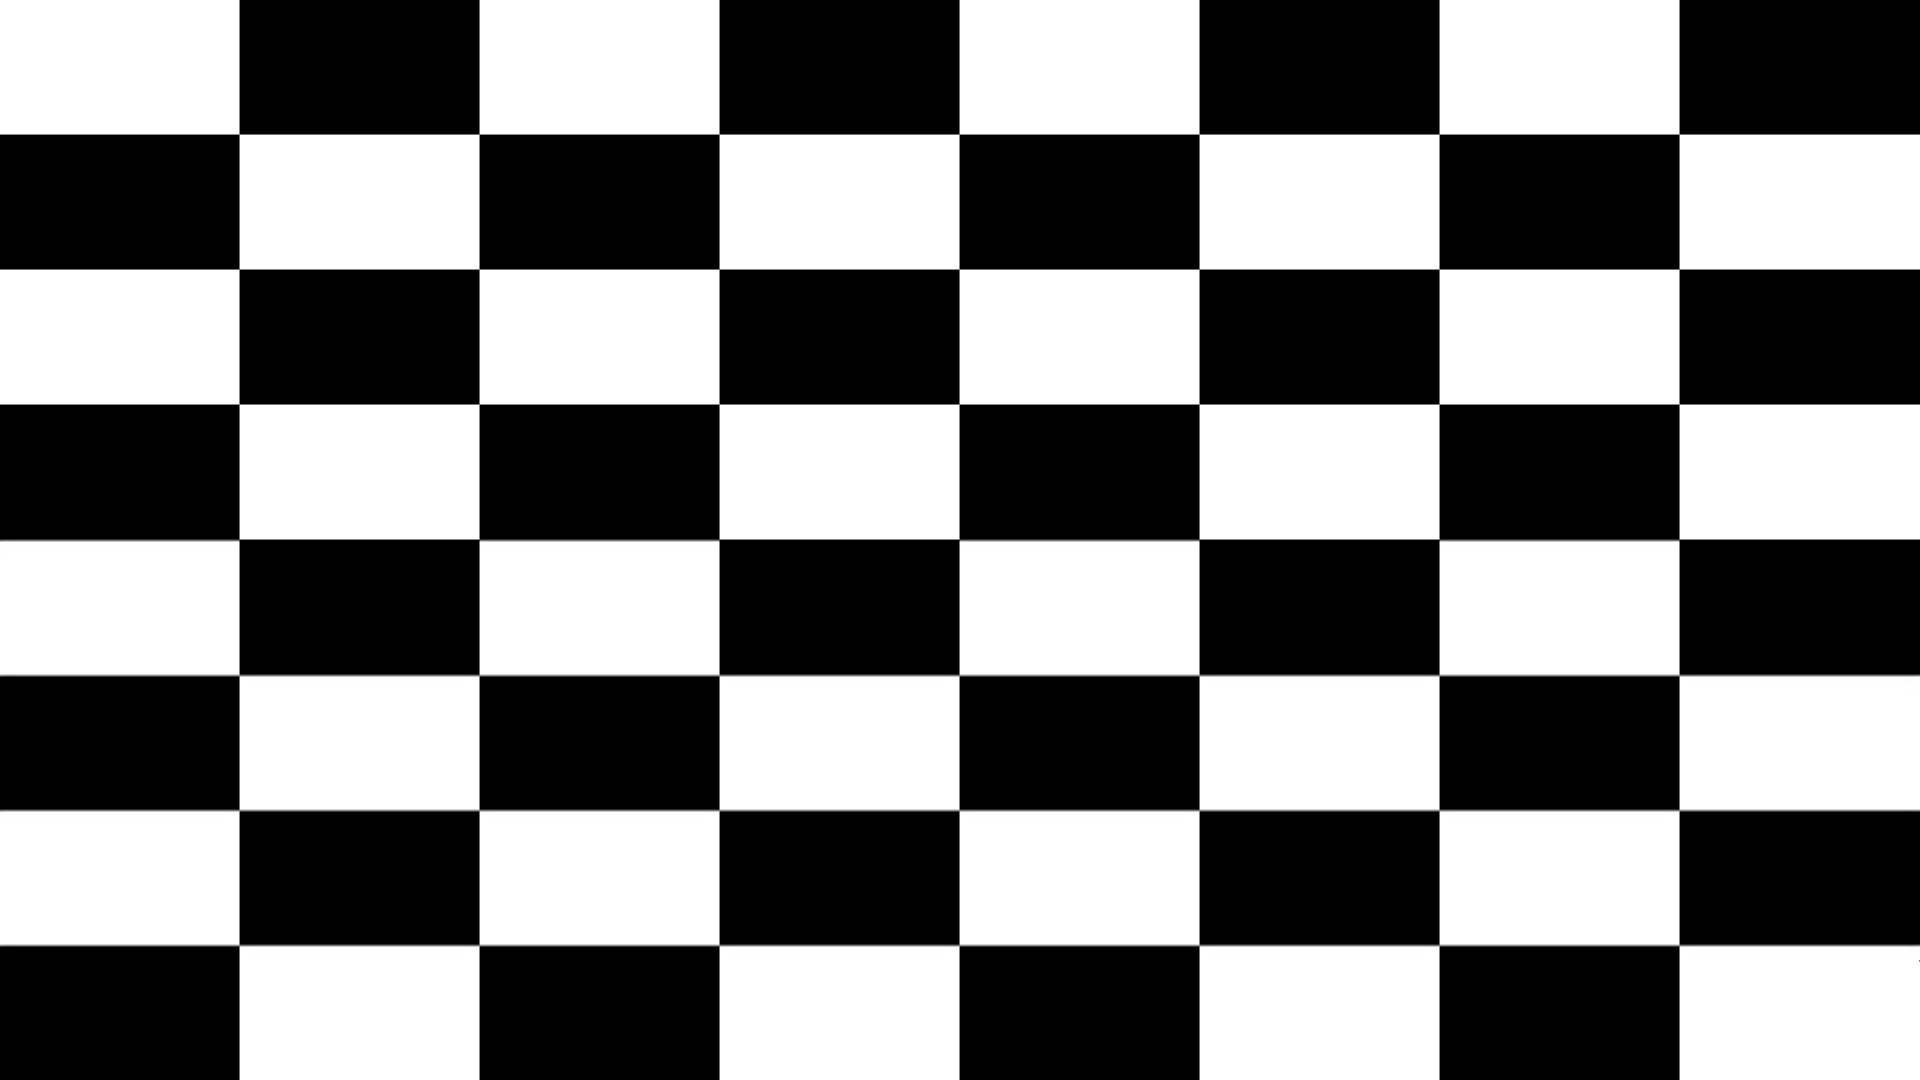 It's just an image of Old Fashioned Printable Checkers Board